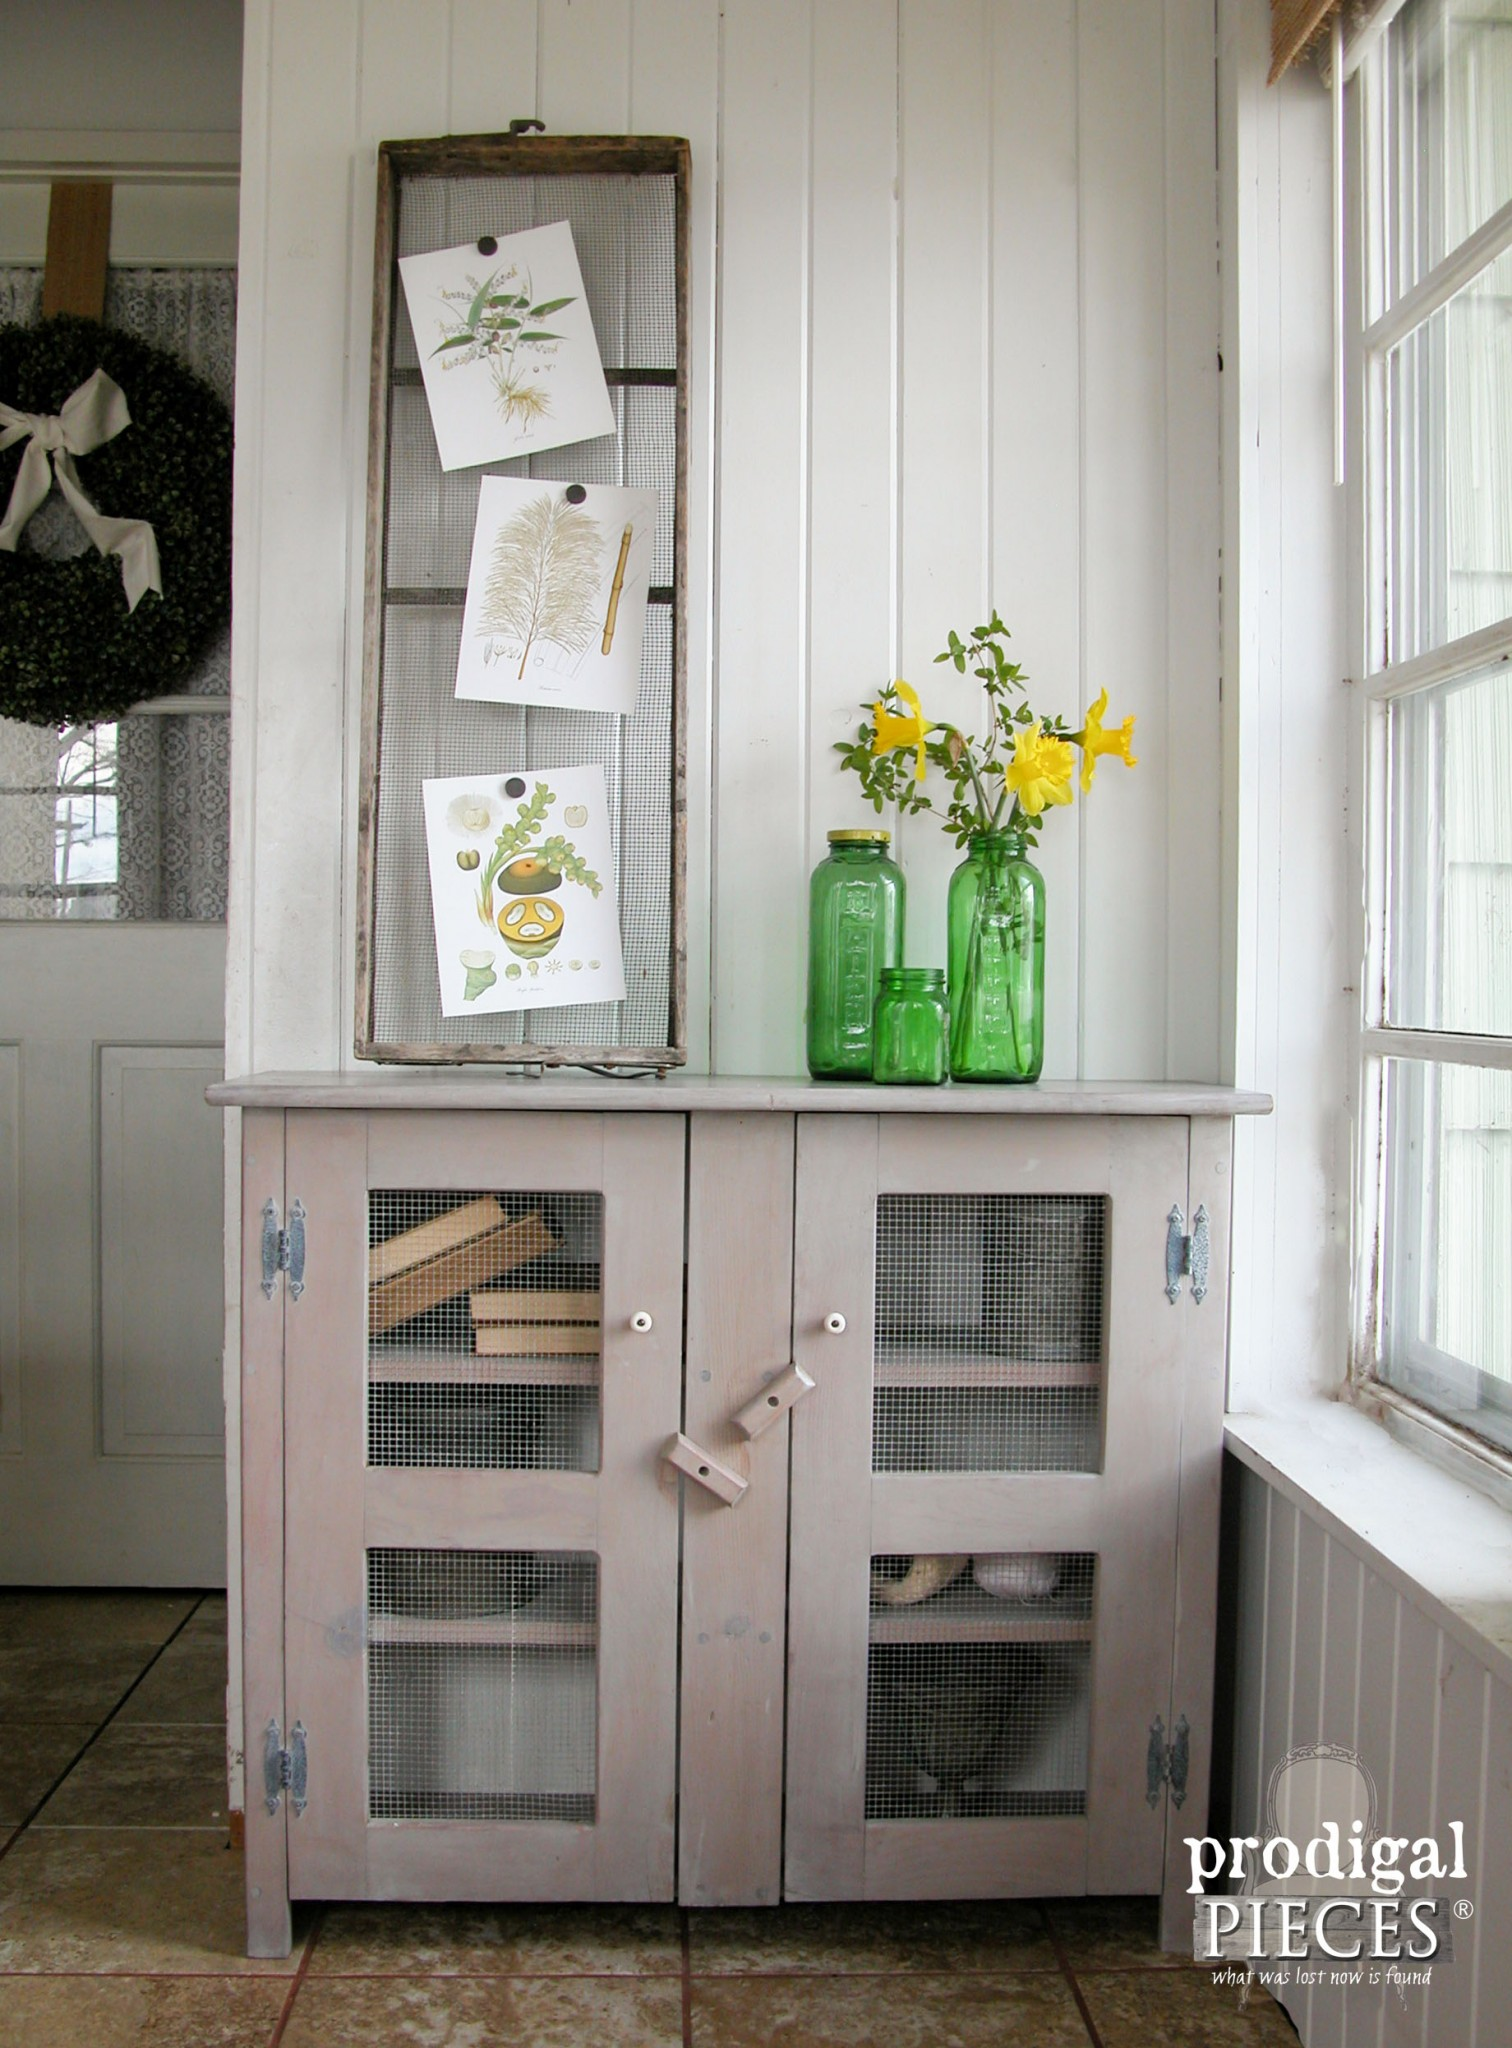 Sunbleached Primitive Cupboard Redone by Prodigal Pieces | prodigalpieces.com